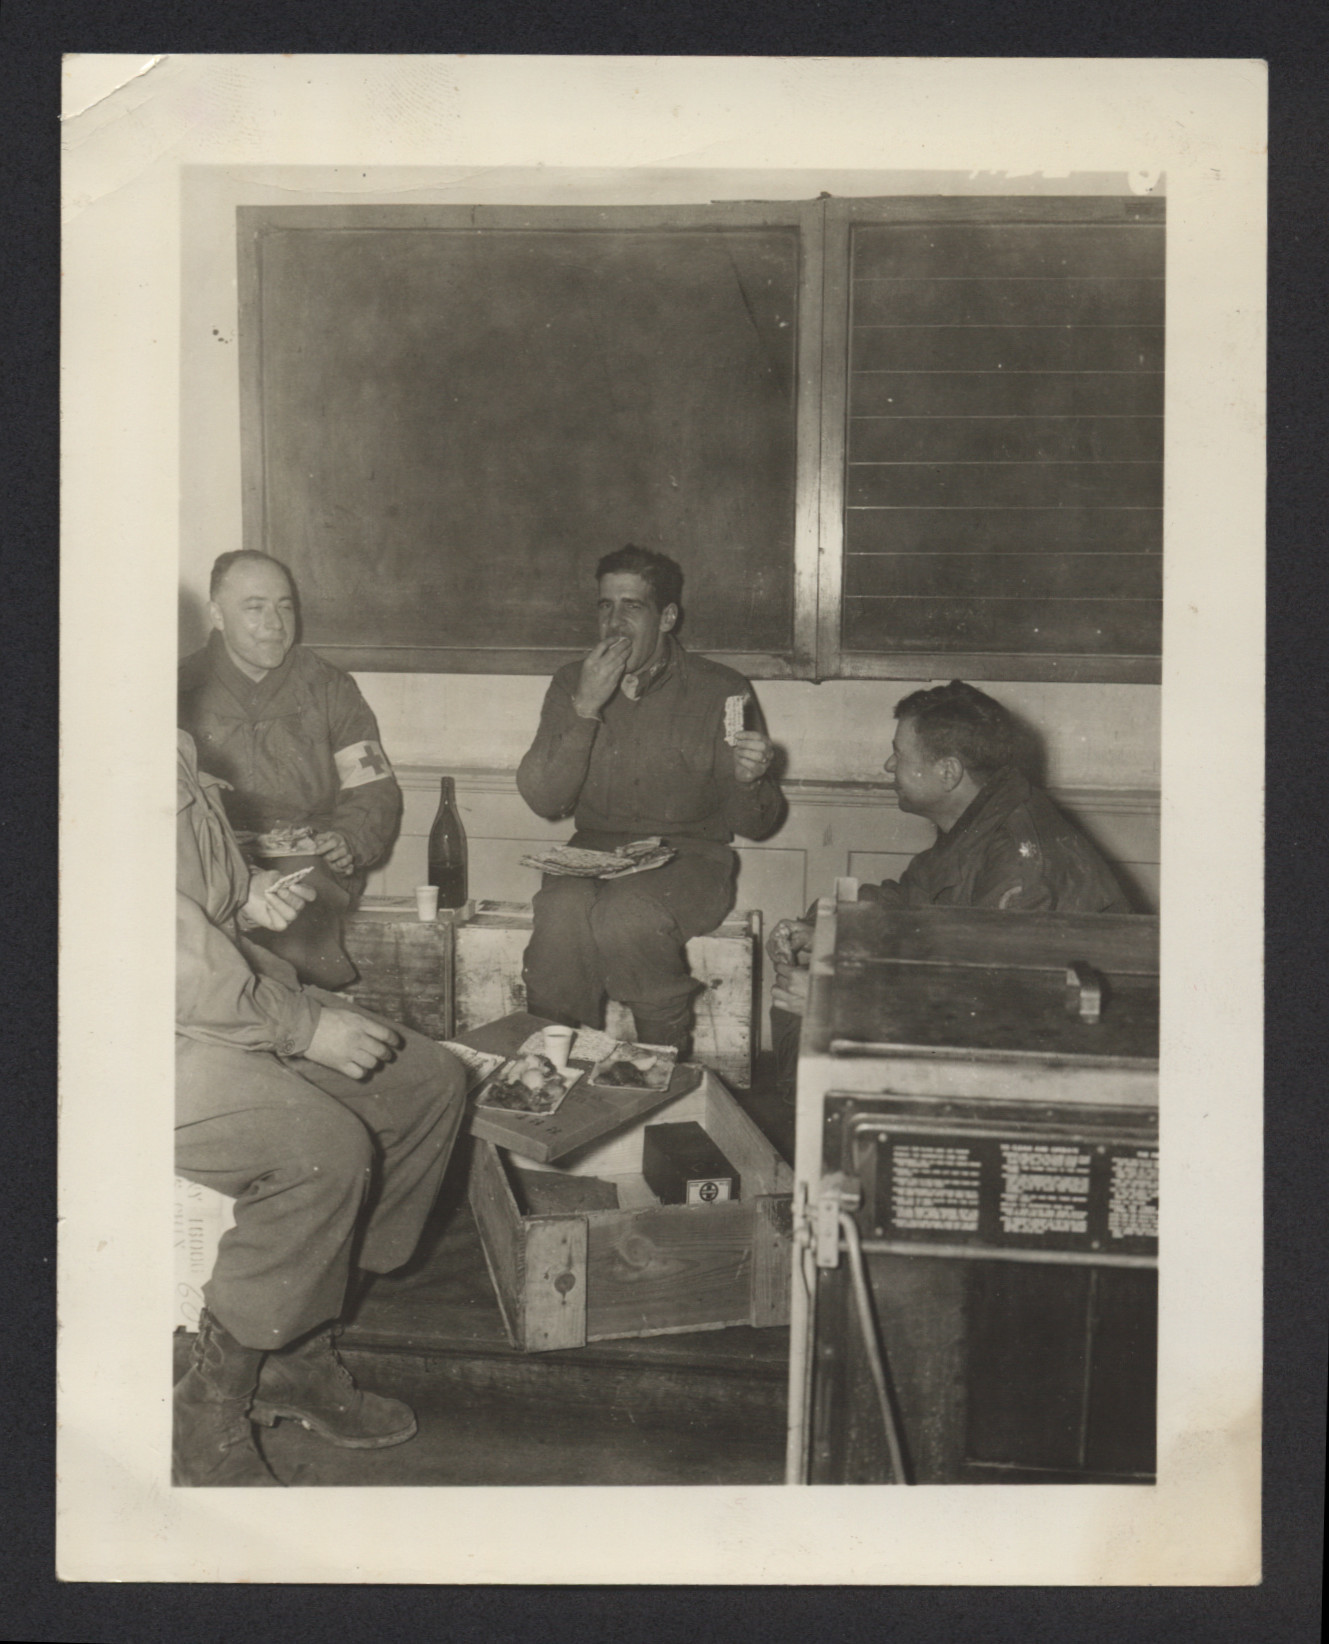 Four American GIs share a Passover meal in their quarters.